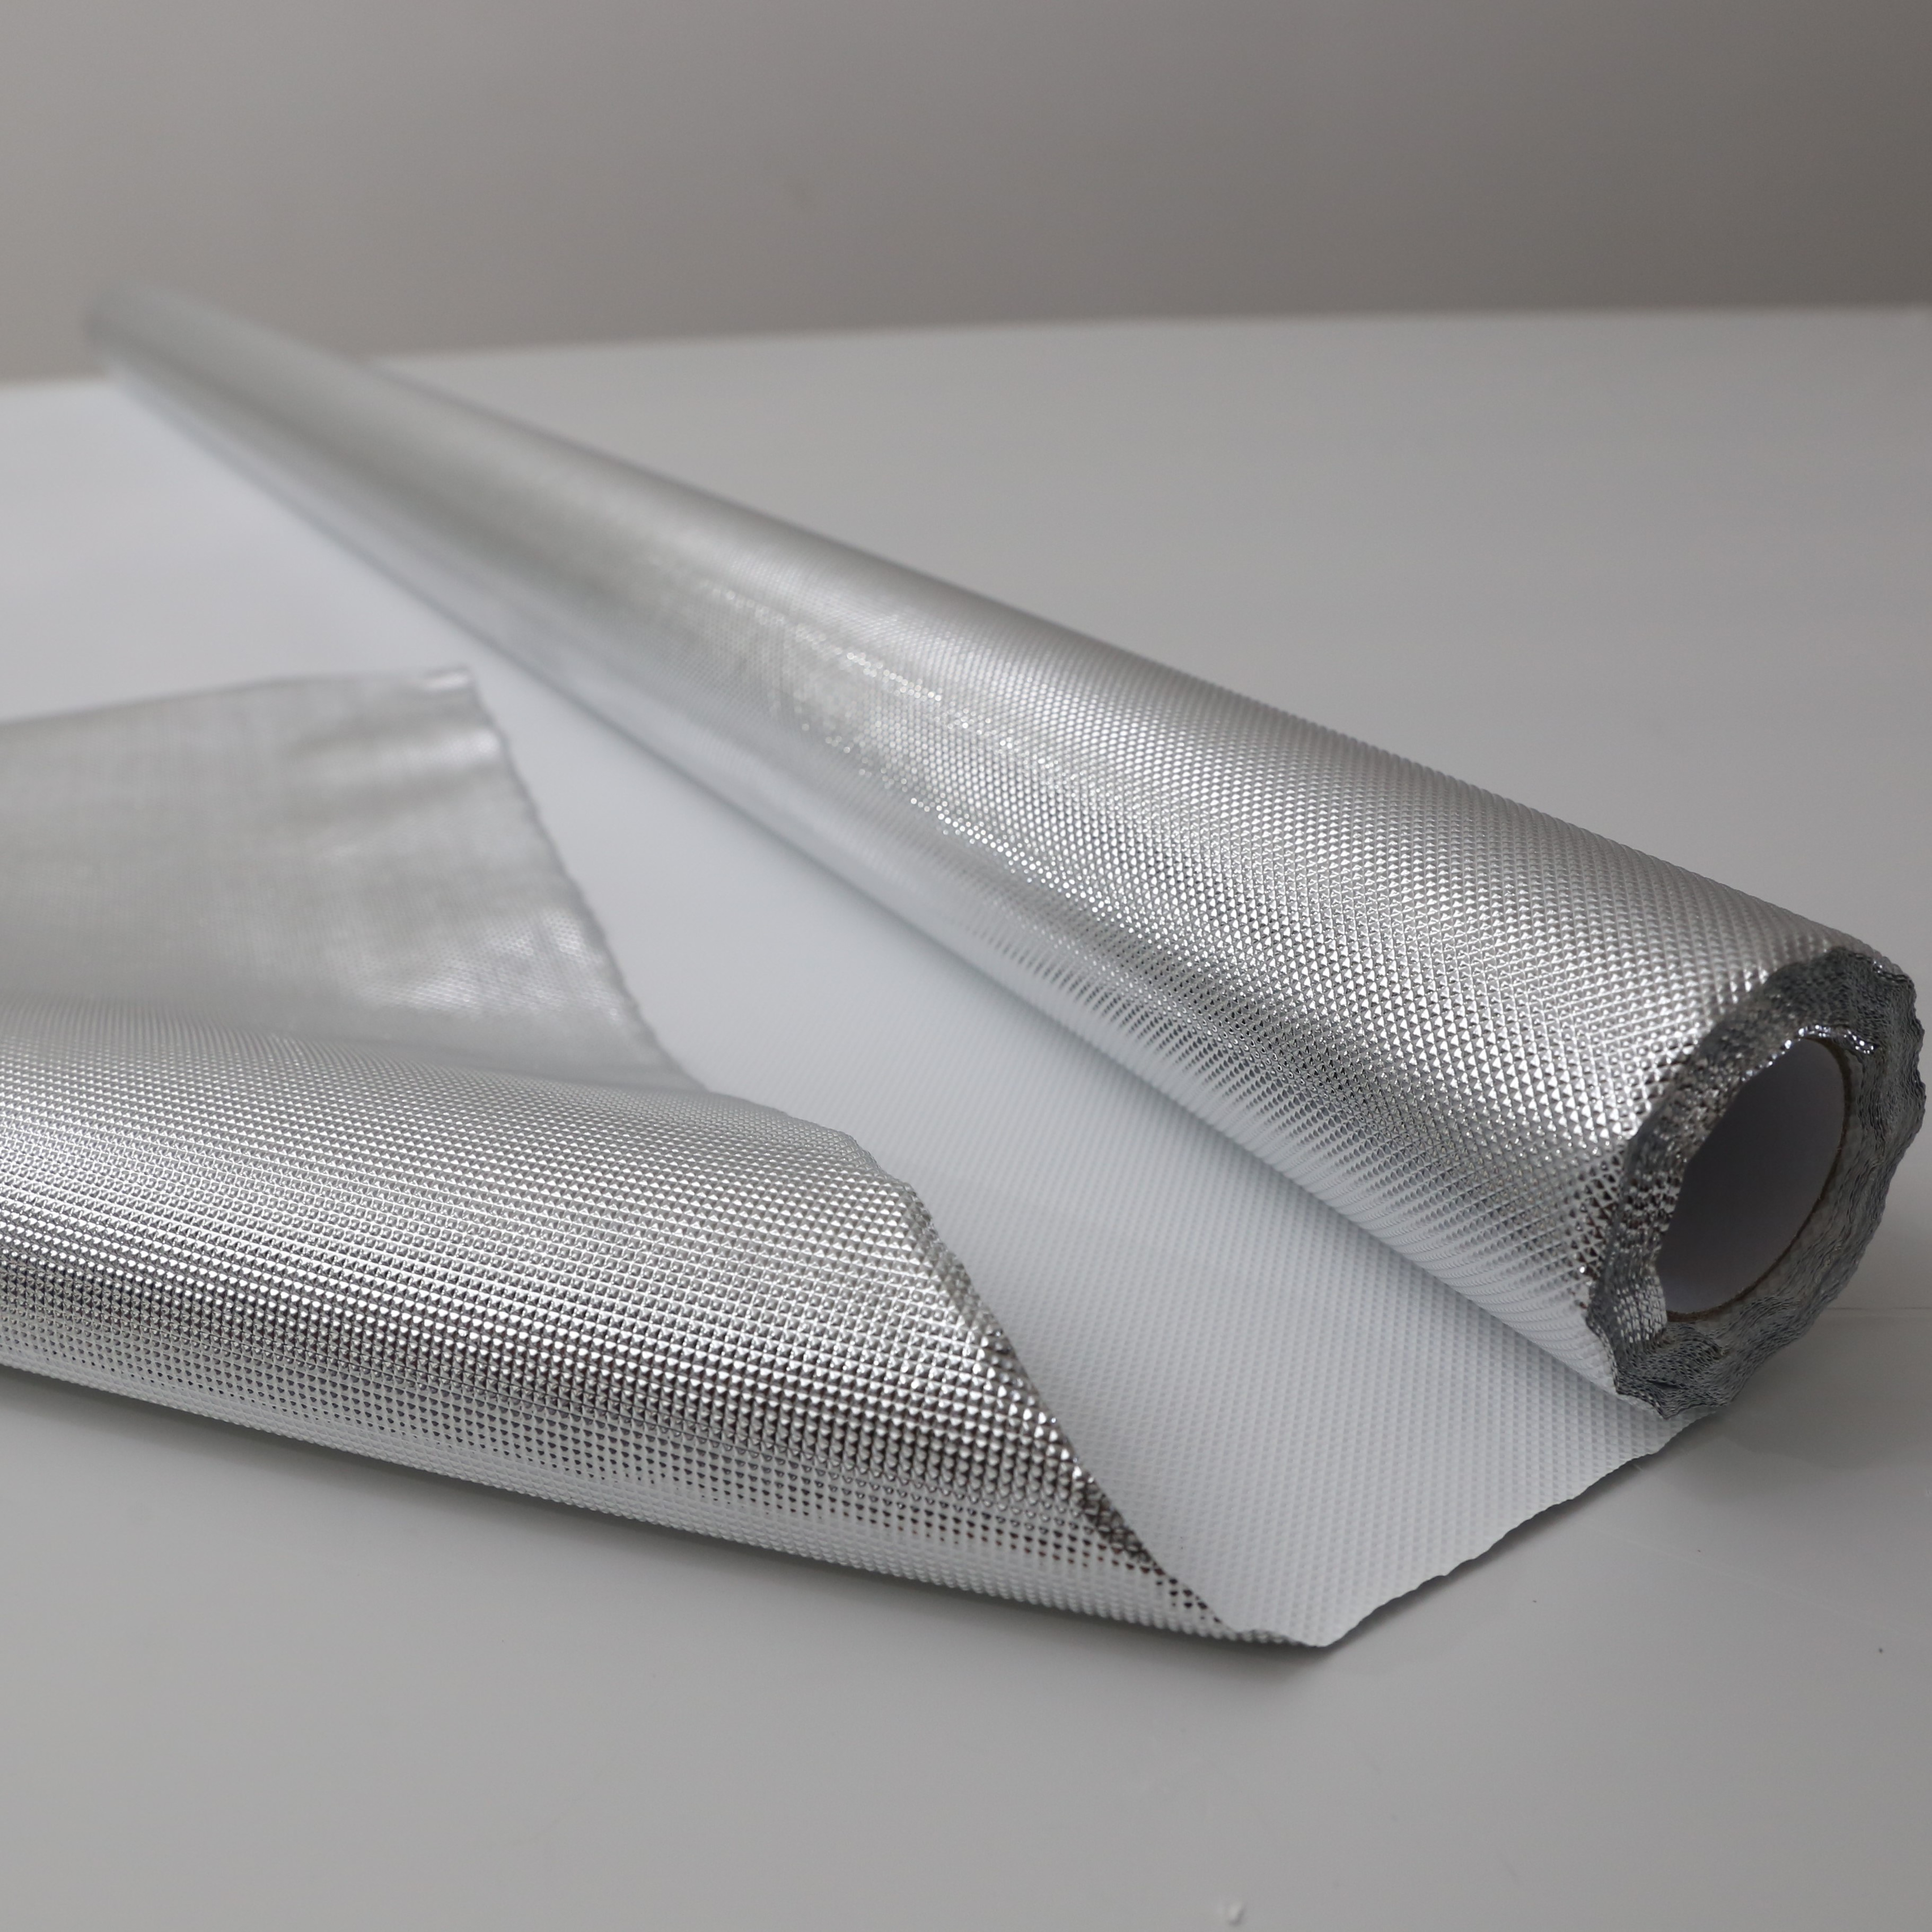 Hydroponic Grow Light Reflective Sheet: 6mil 4ft x 25ft 50ft 100ft Silber Diamant reflektierender Mylar Film